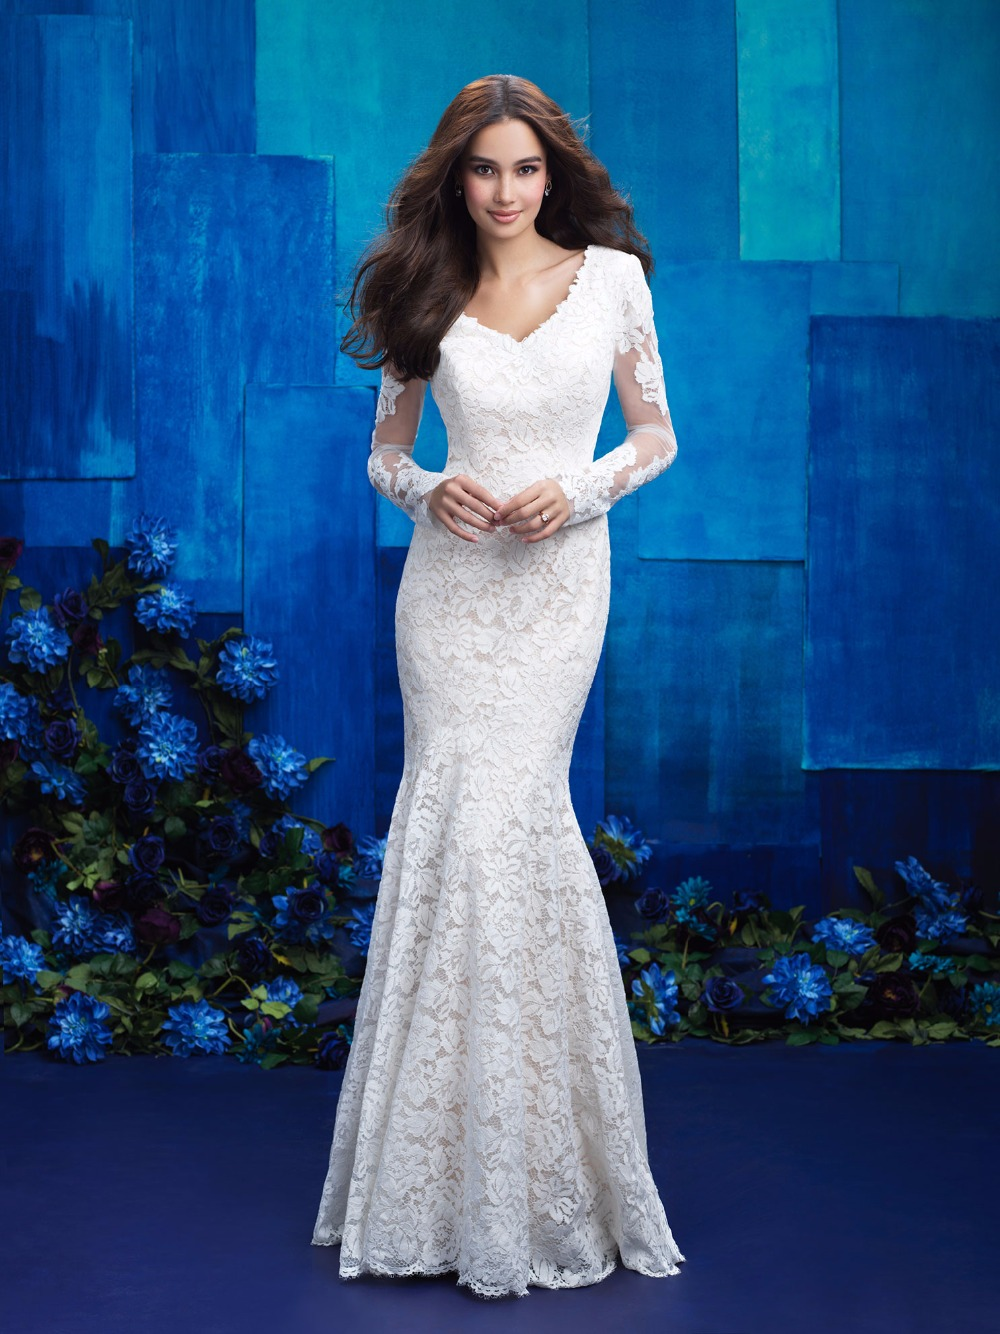 b99b89d522 Lace Boho Wedding Dresses 2019 Modest Mermaid Long Sleeves Bridal Gowns  Vintage Simple Mature Women Wedding Gowns Cheap New